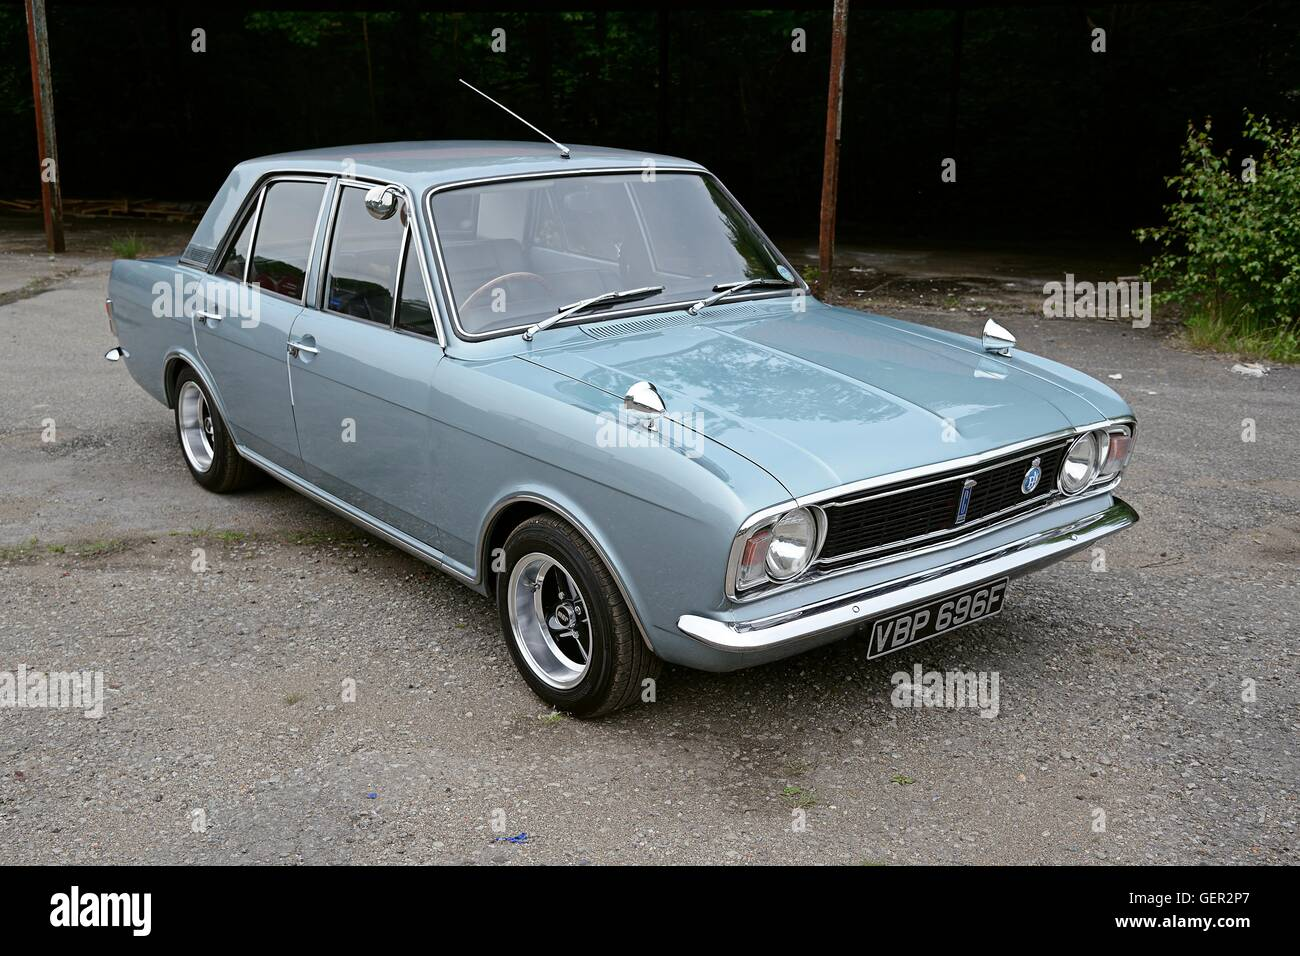 A Sixties Ford Cortina MkII saloon stands on concrete in front of an old covered shed - Stock Image